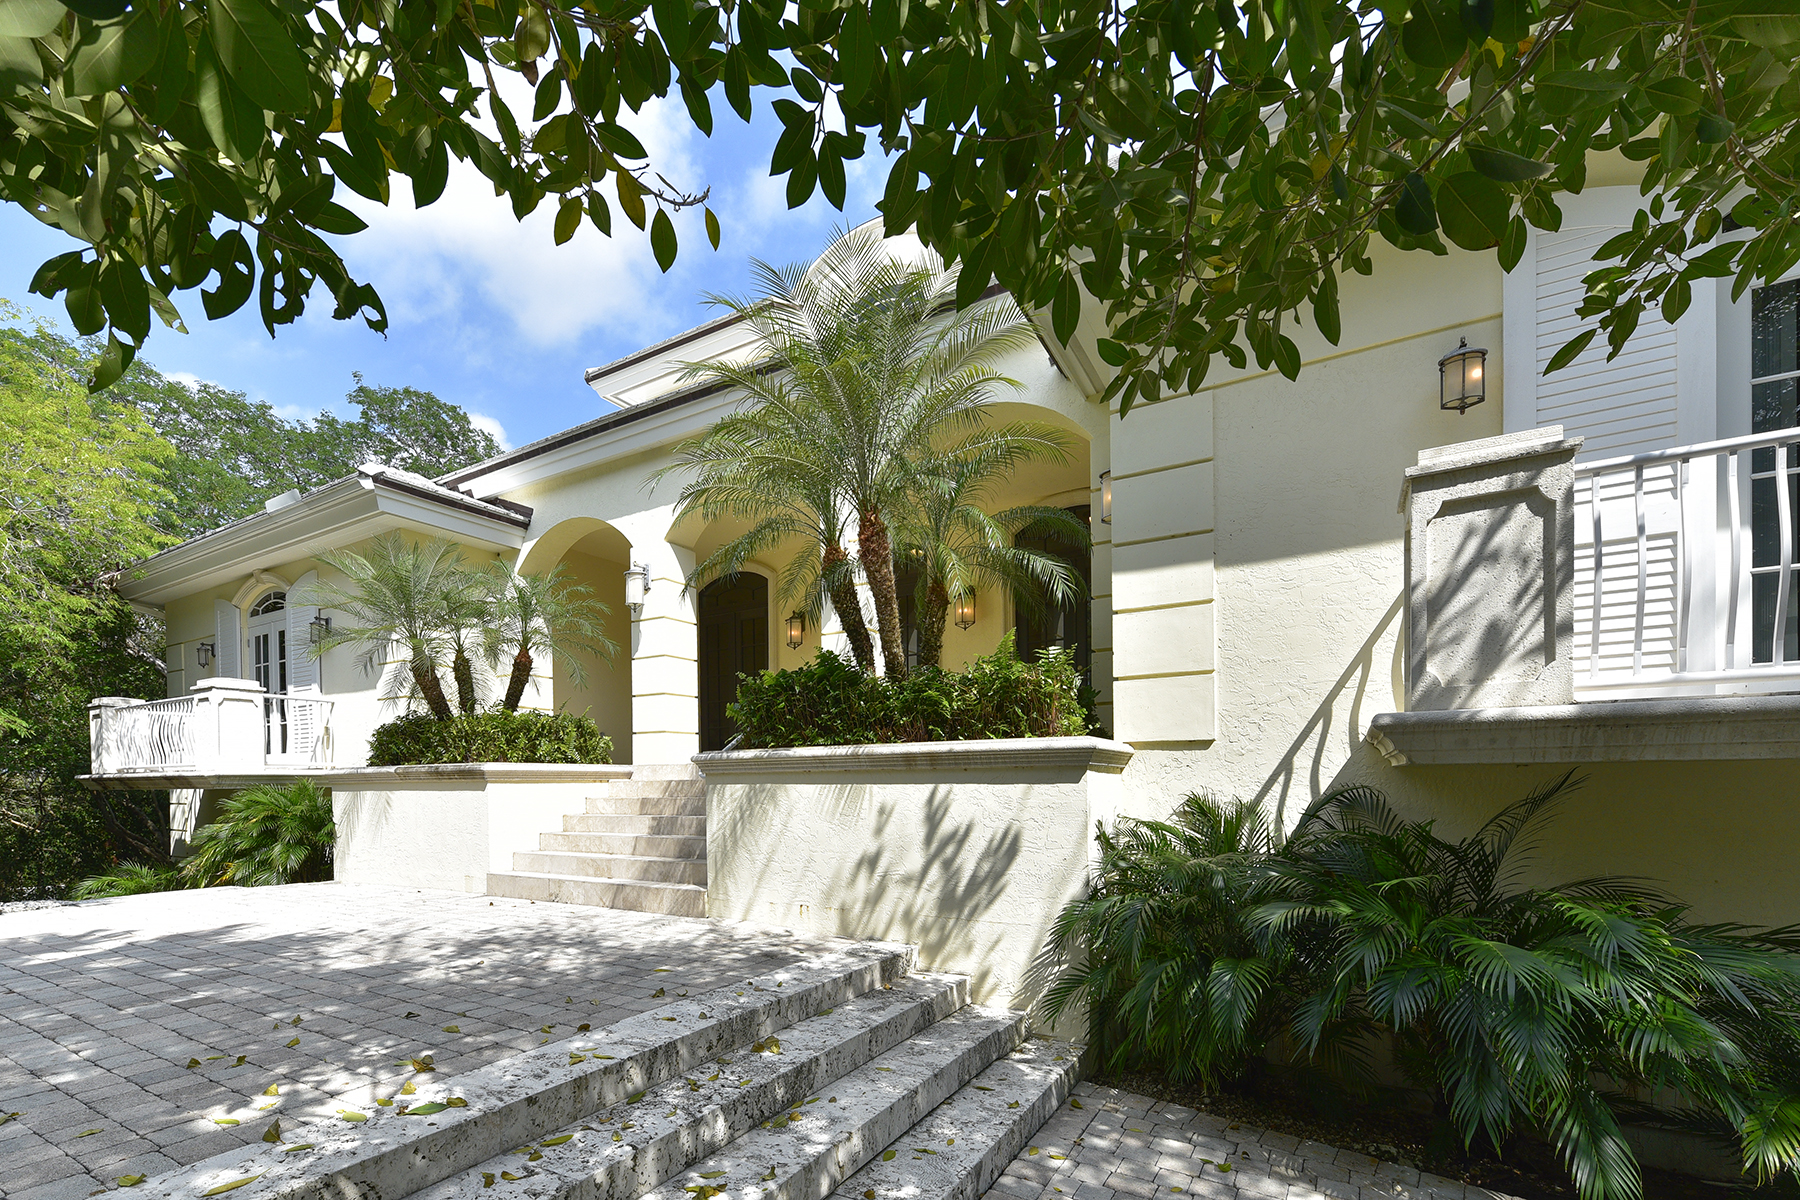 Maison unifamiliale pour l Vente à Custom Built Waterfront Home at Ocean Reef 16 North Bridge Lane Ocean Reef Community, Key Largo, Florida, 33037 États-Unis